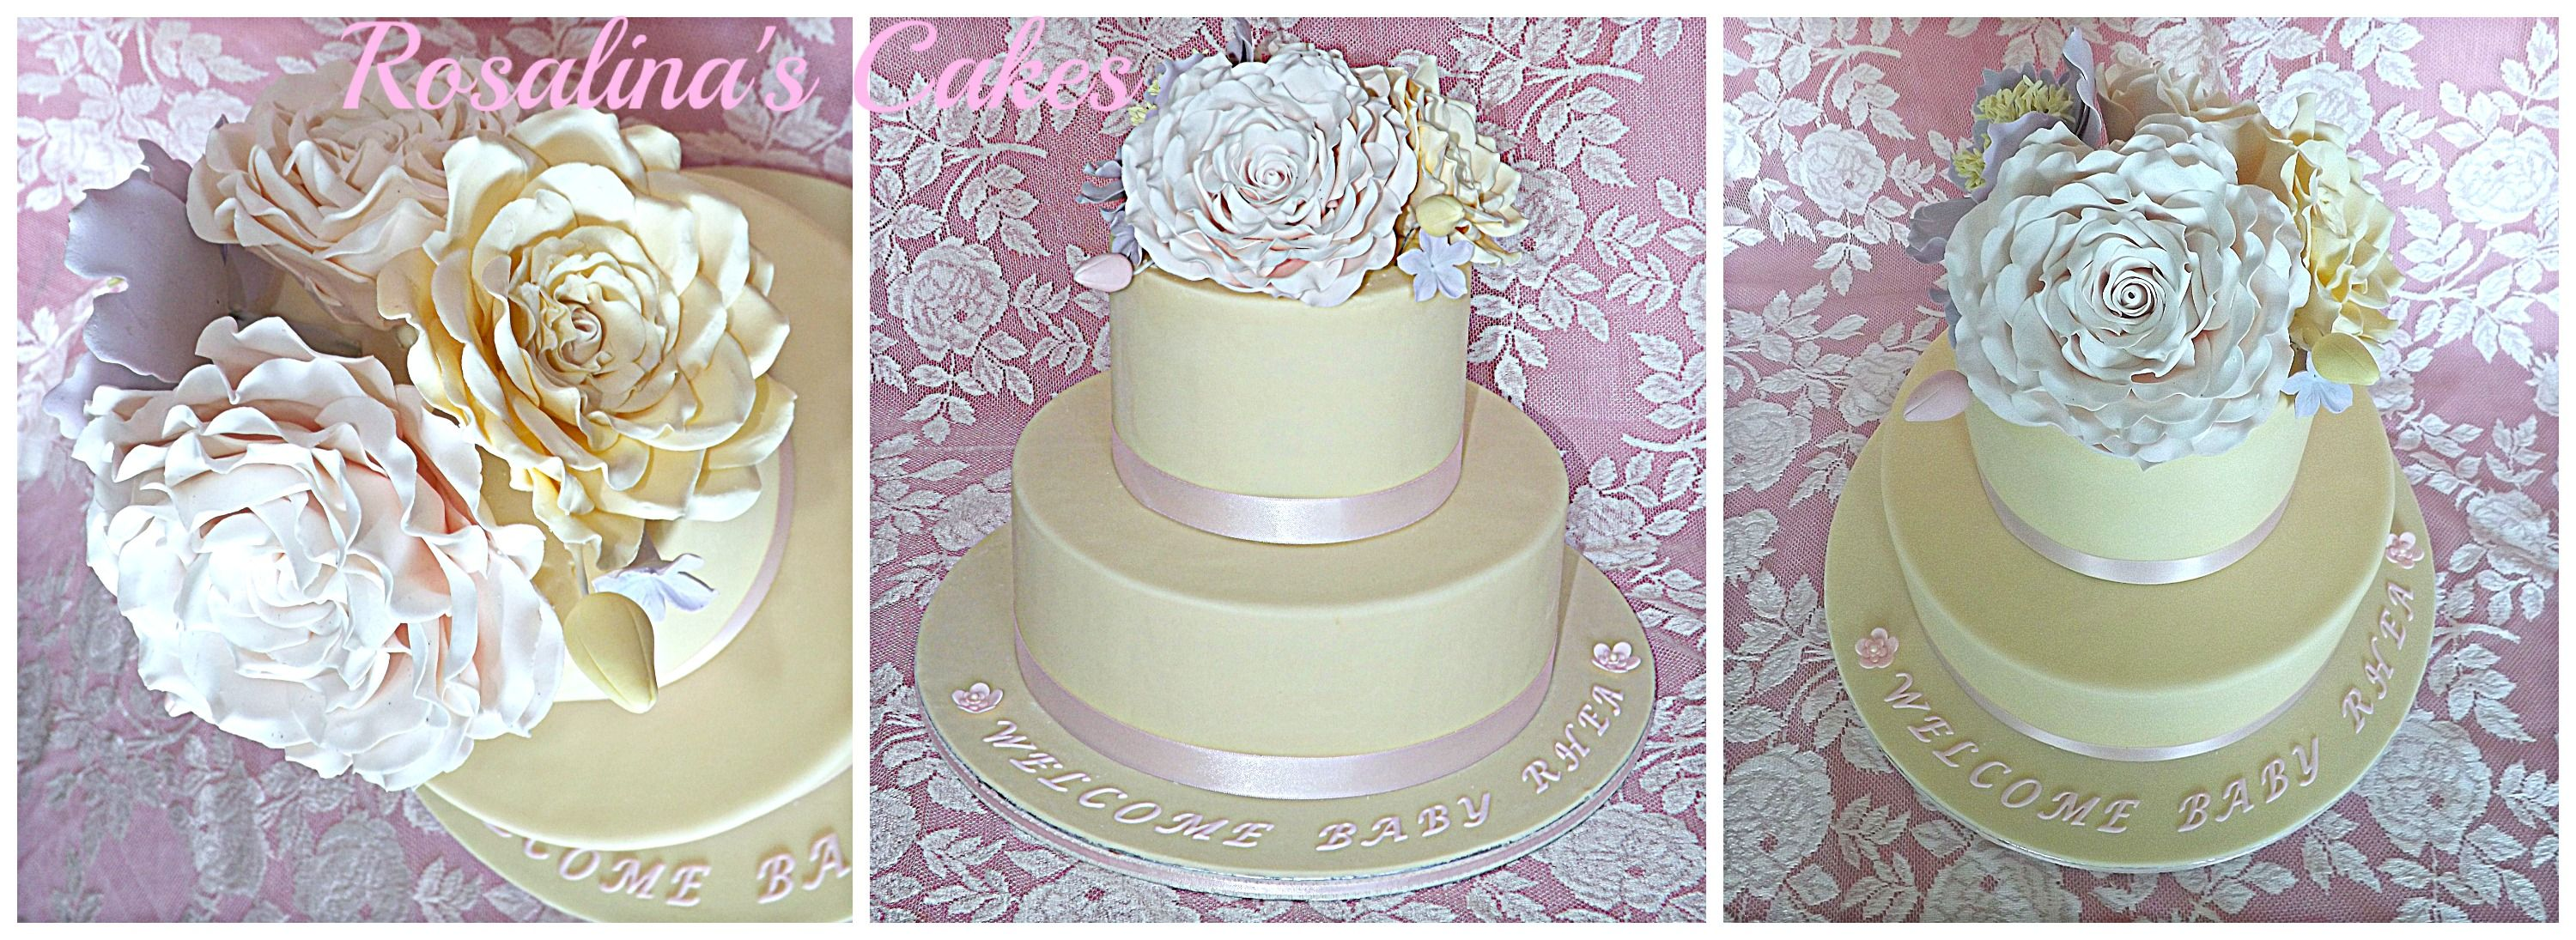 Gorgeous baby shower cake in cream color with pastel colored flowers.This could also be a simple wedding cake.